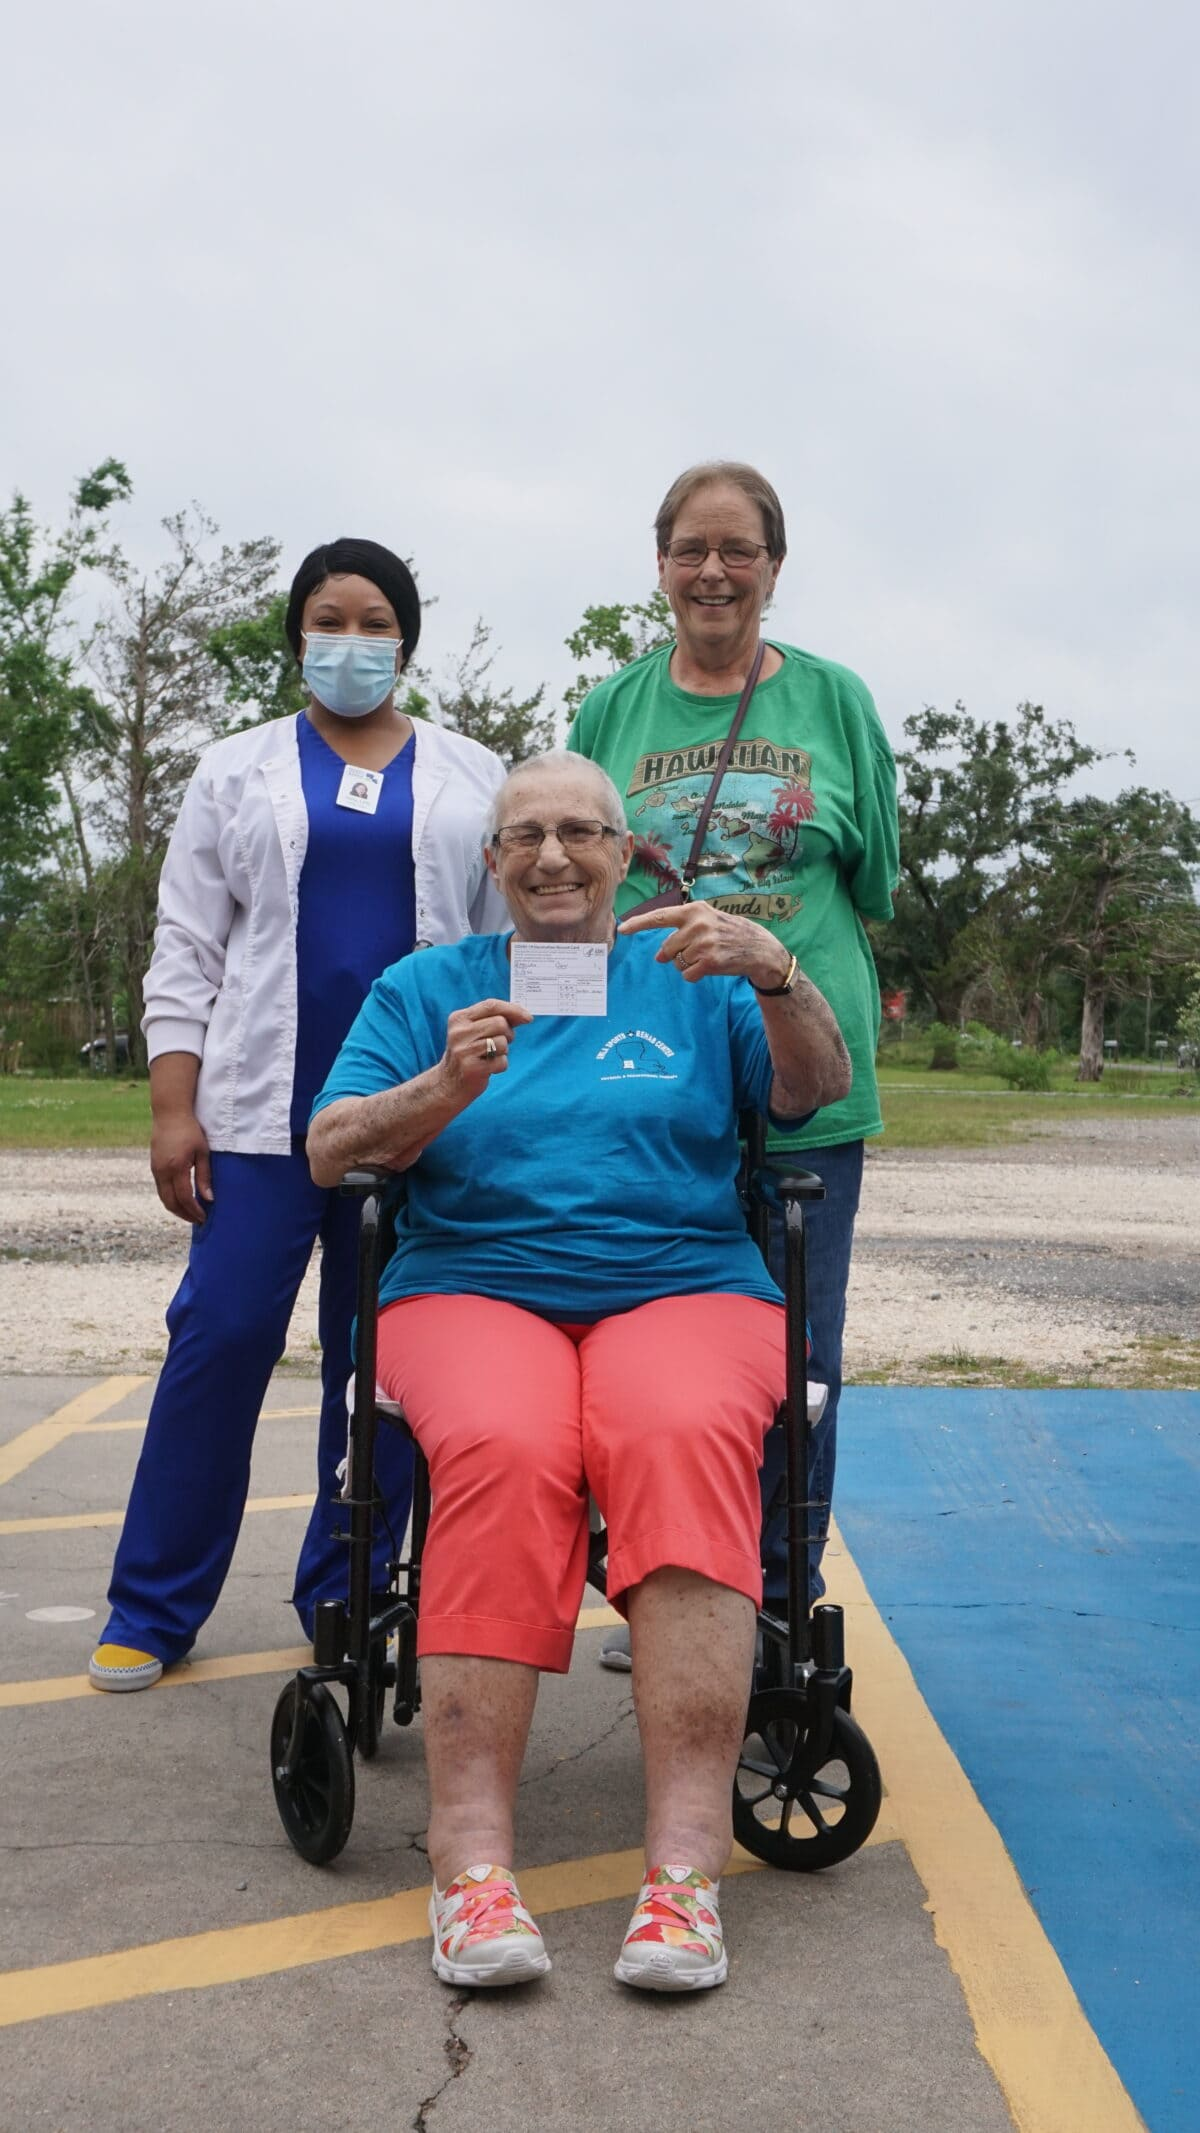 Carol Pettyjean, seated, shows off her vaccination card after getting her shot.